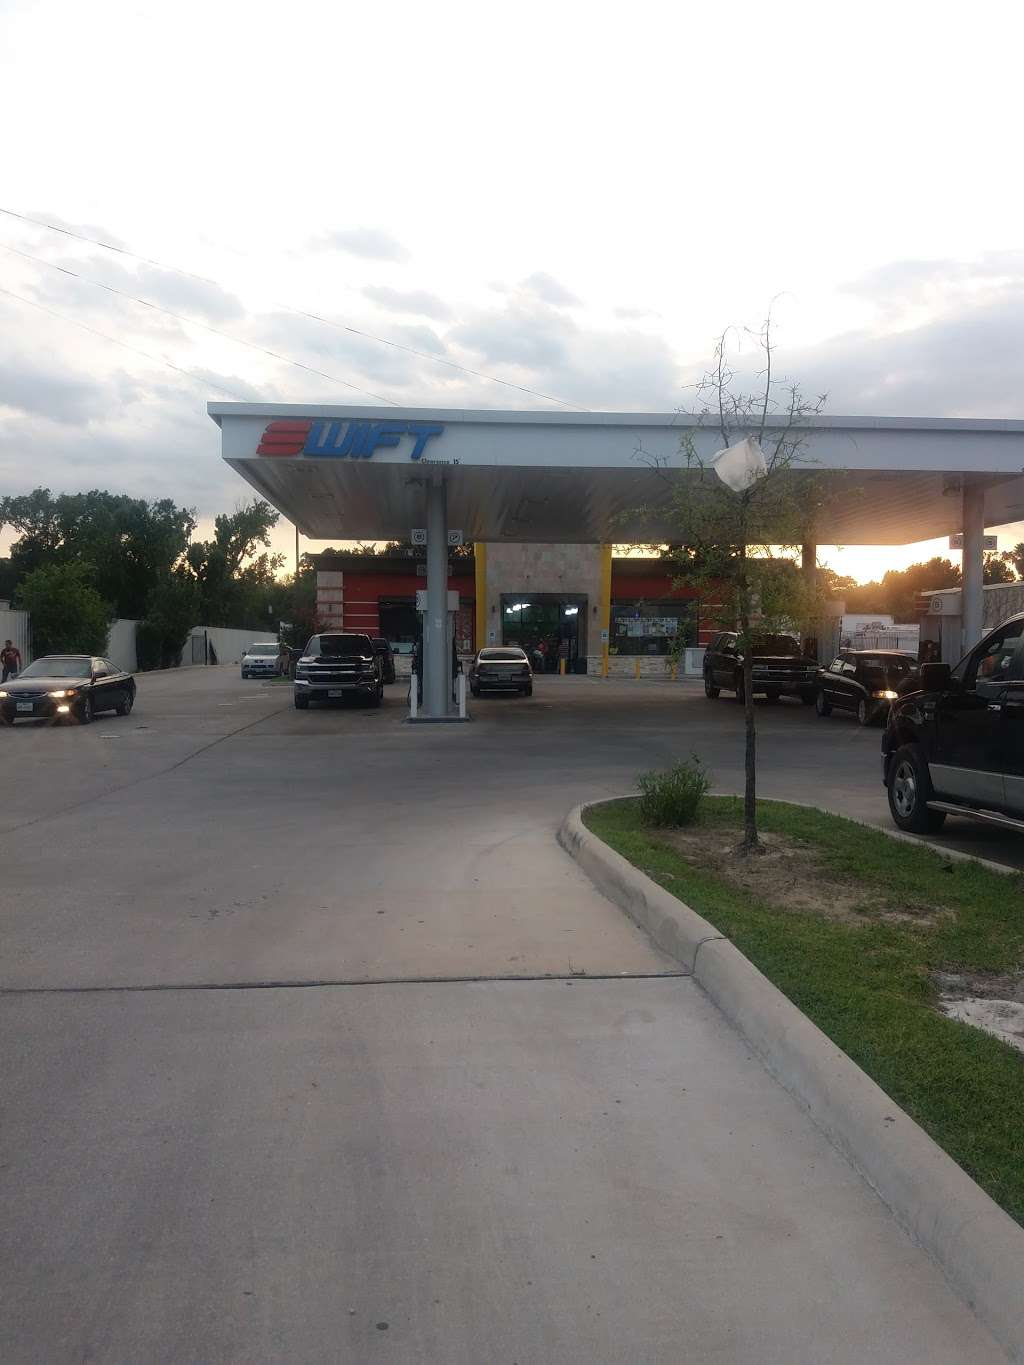 swift gas station - gas station  | Photo 3 of 6 | Address: 3911 Hollister Rd, Houston, TX 77080, USA | Phone: (713) 939-1339